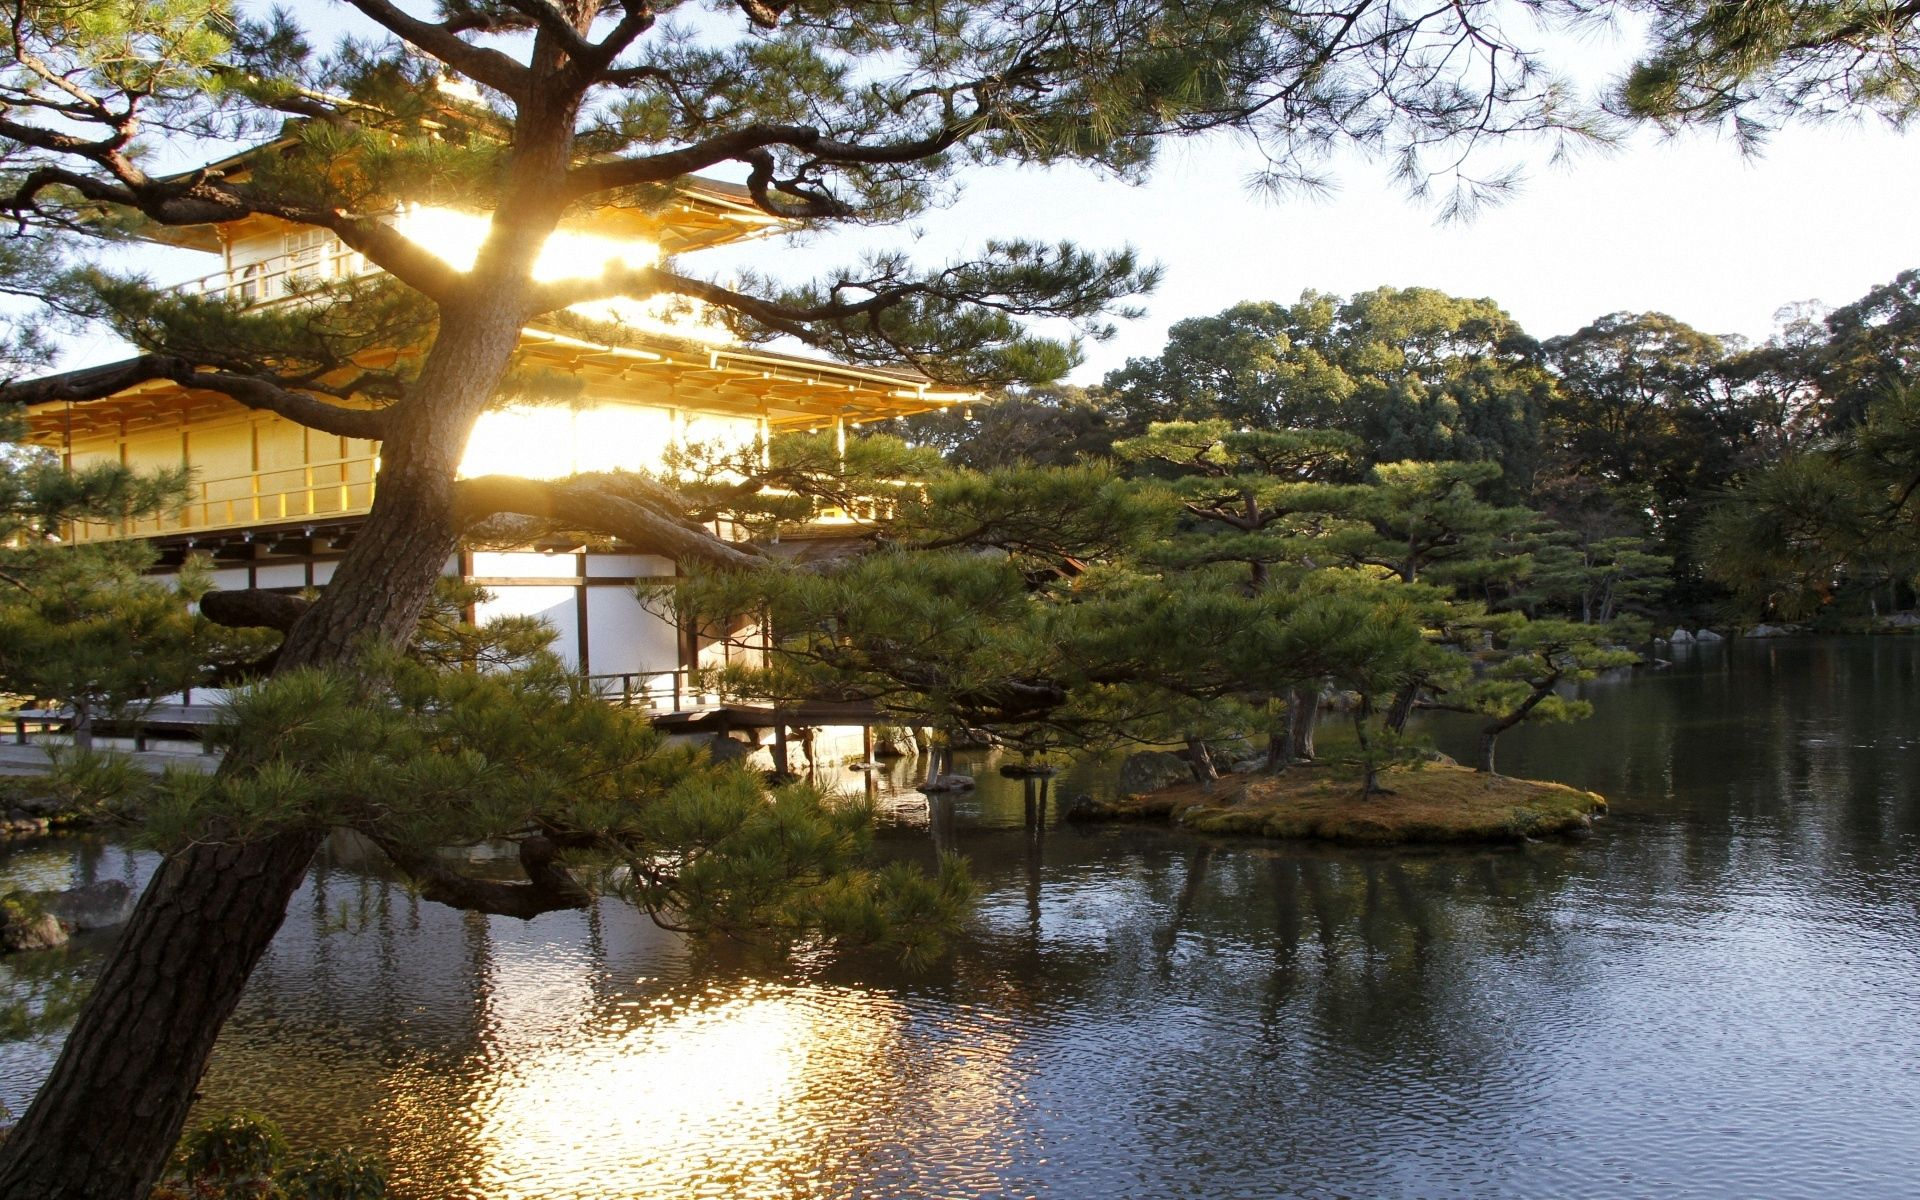 62938 download wallpaper Nature, Water, Trees, Evening, Garden, Japan, Mansion screensavers and pictures for free